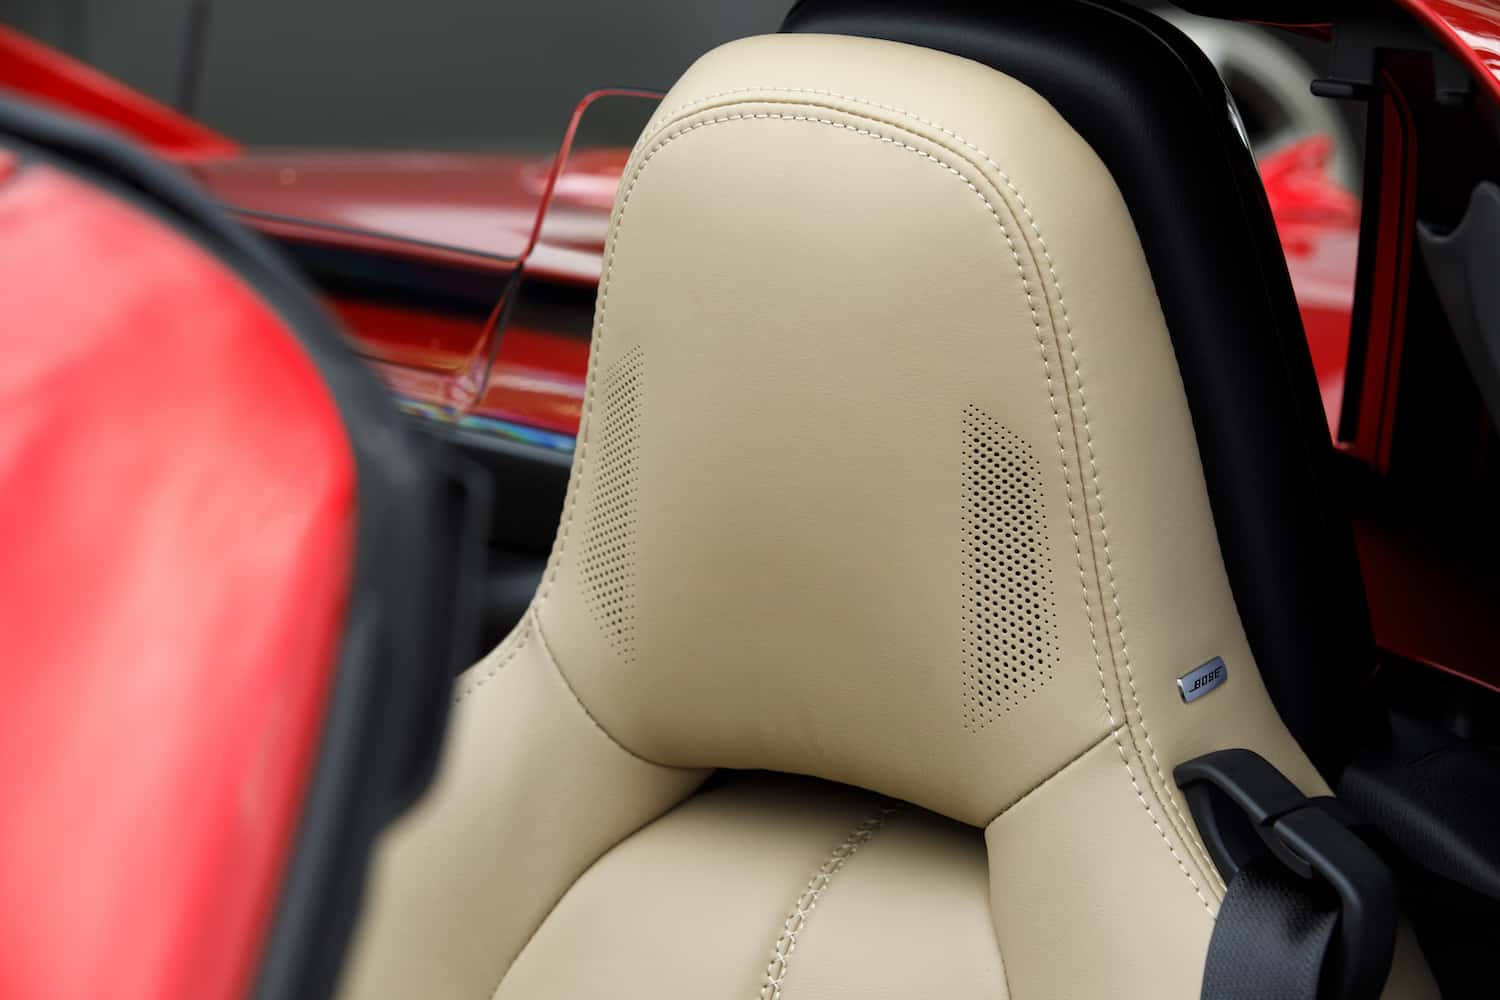 2017 Mazda MX-5 RF review headrest